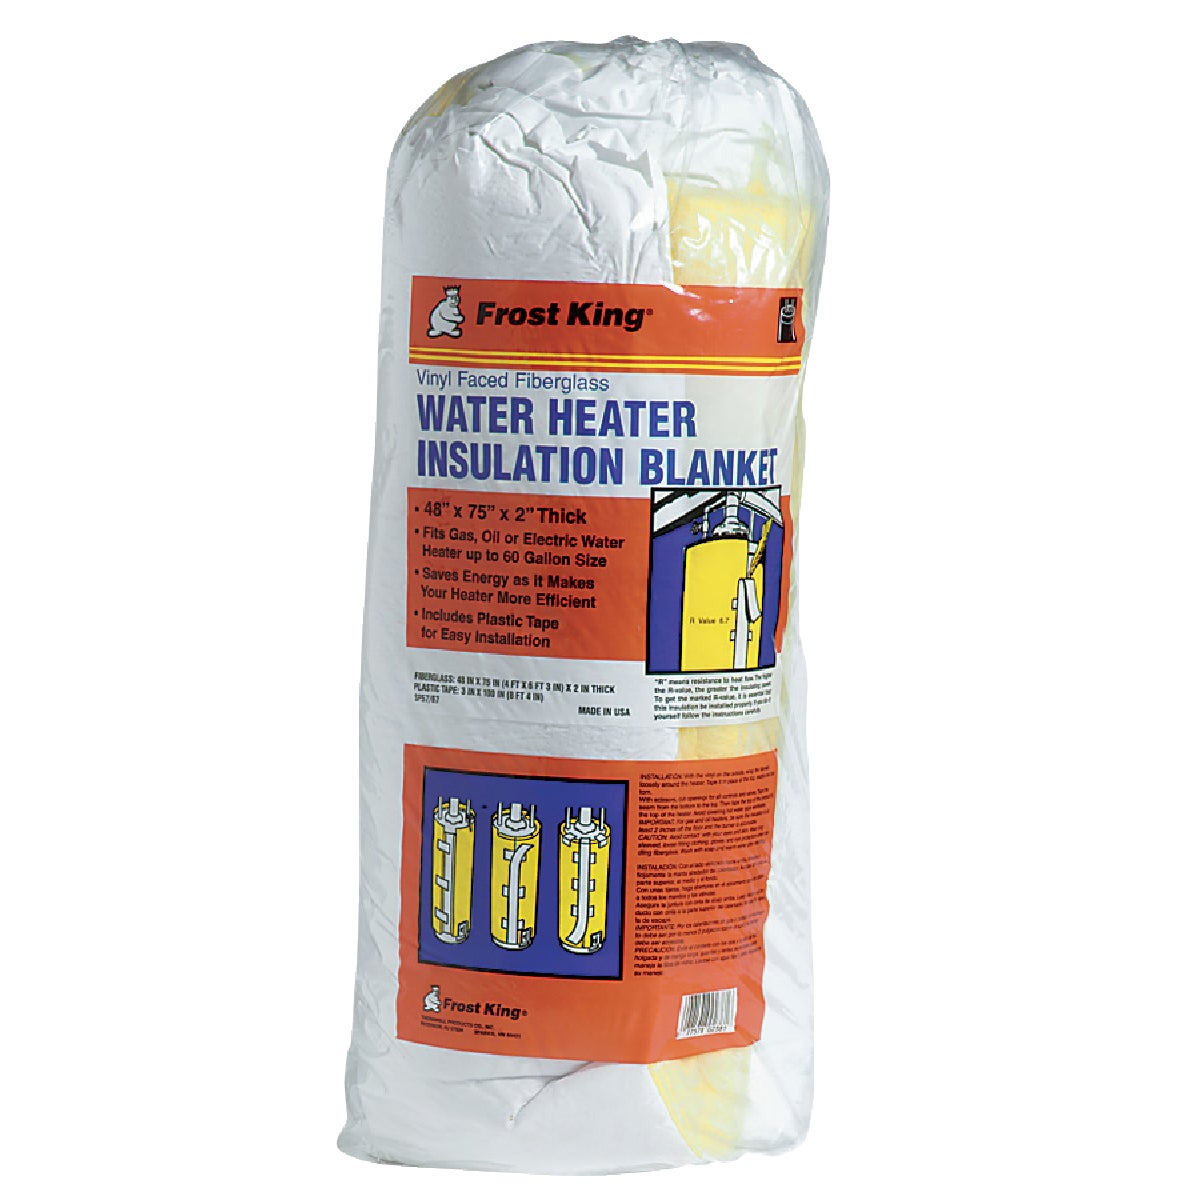 WATER HEATER JACKET - SP57/67 by Thermwell Prods Co